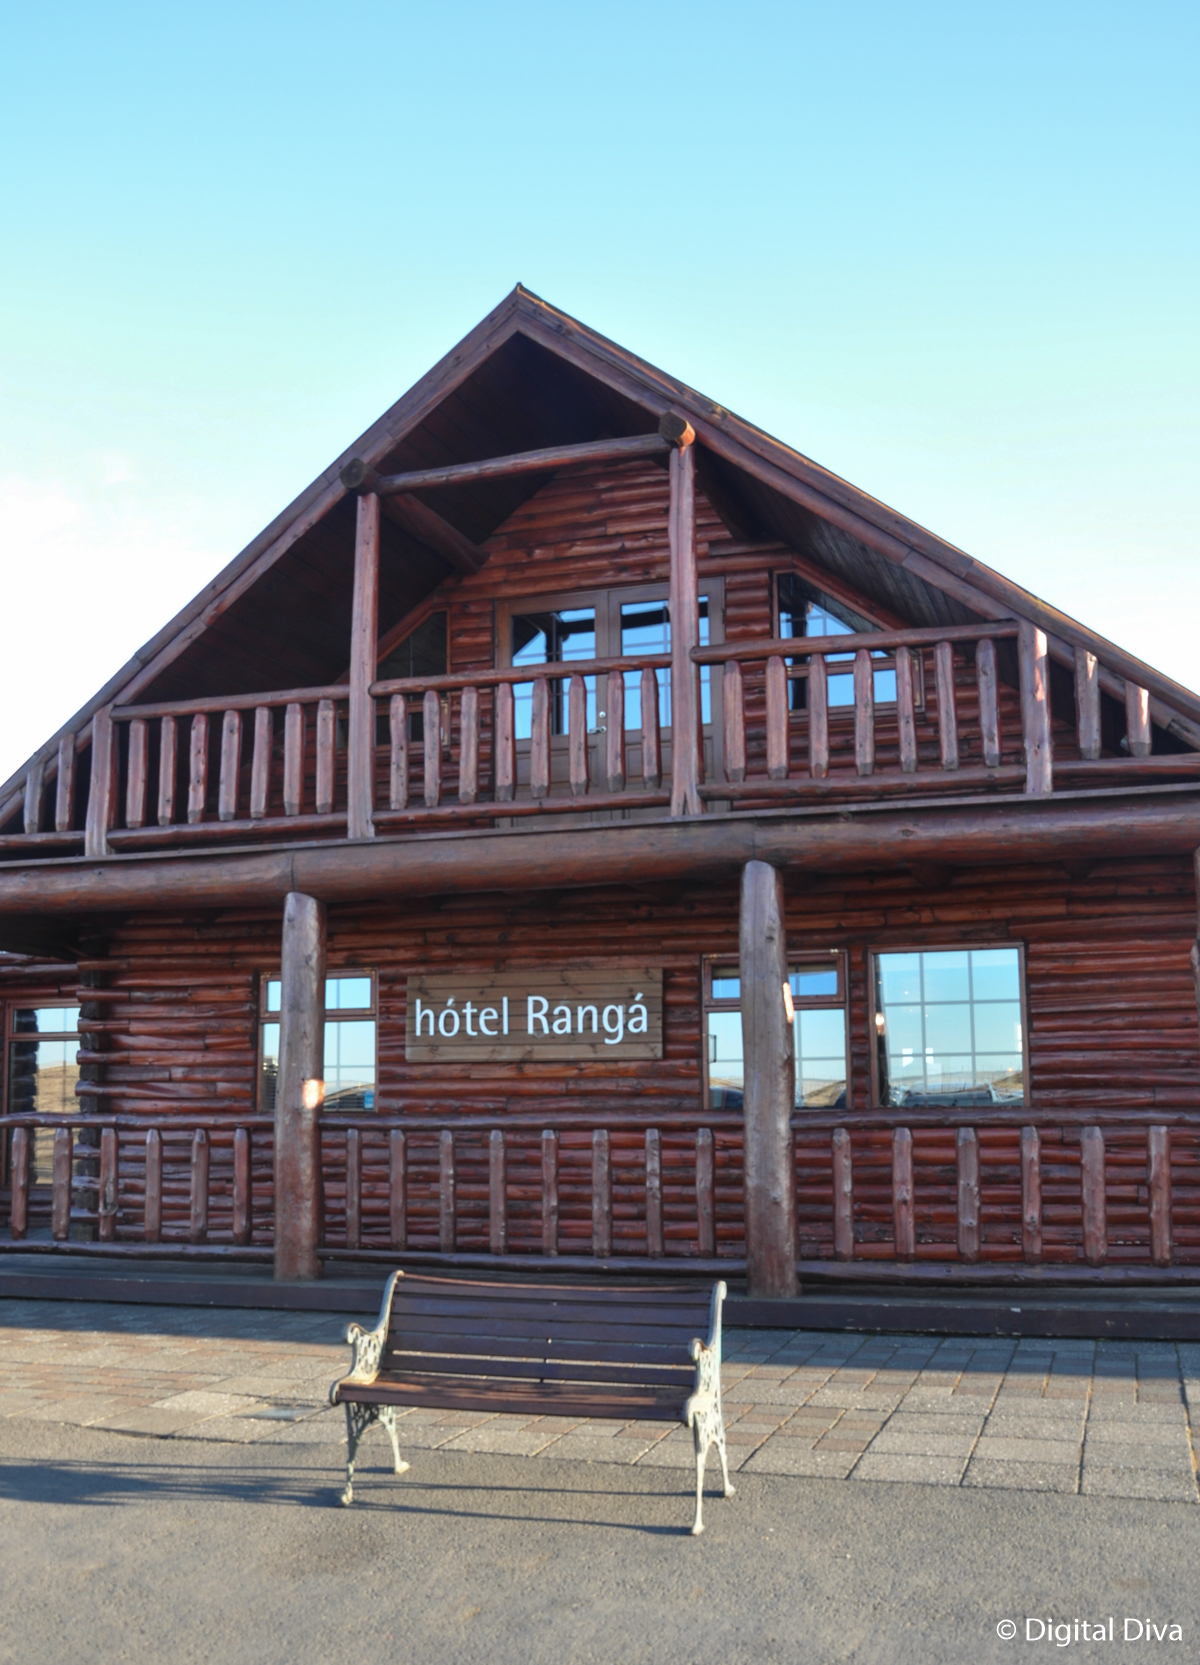 Hotel Ranga - Luxury Hotel in South Iceland